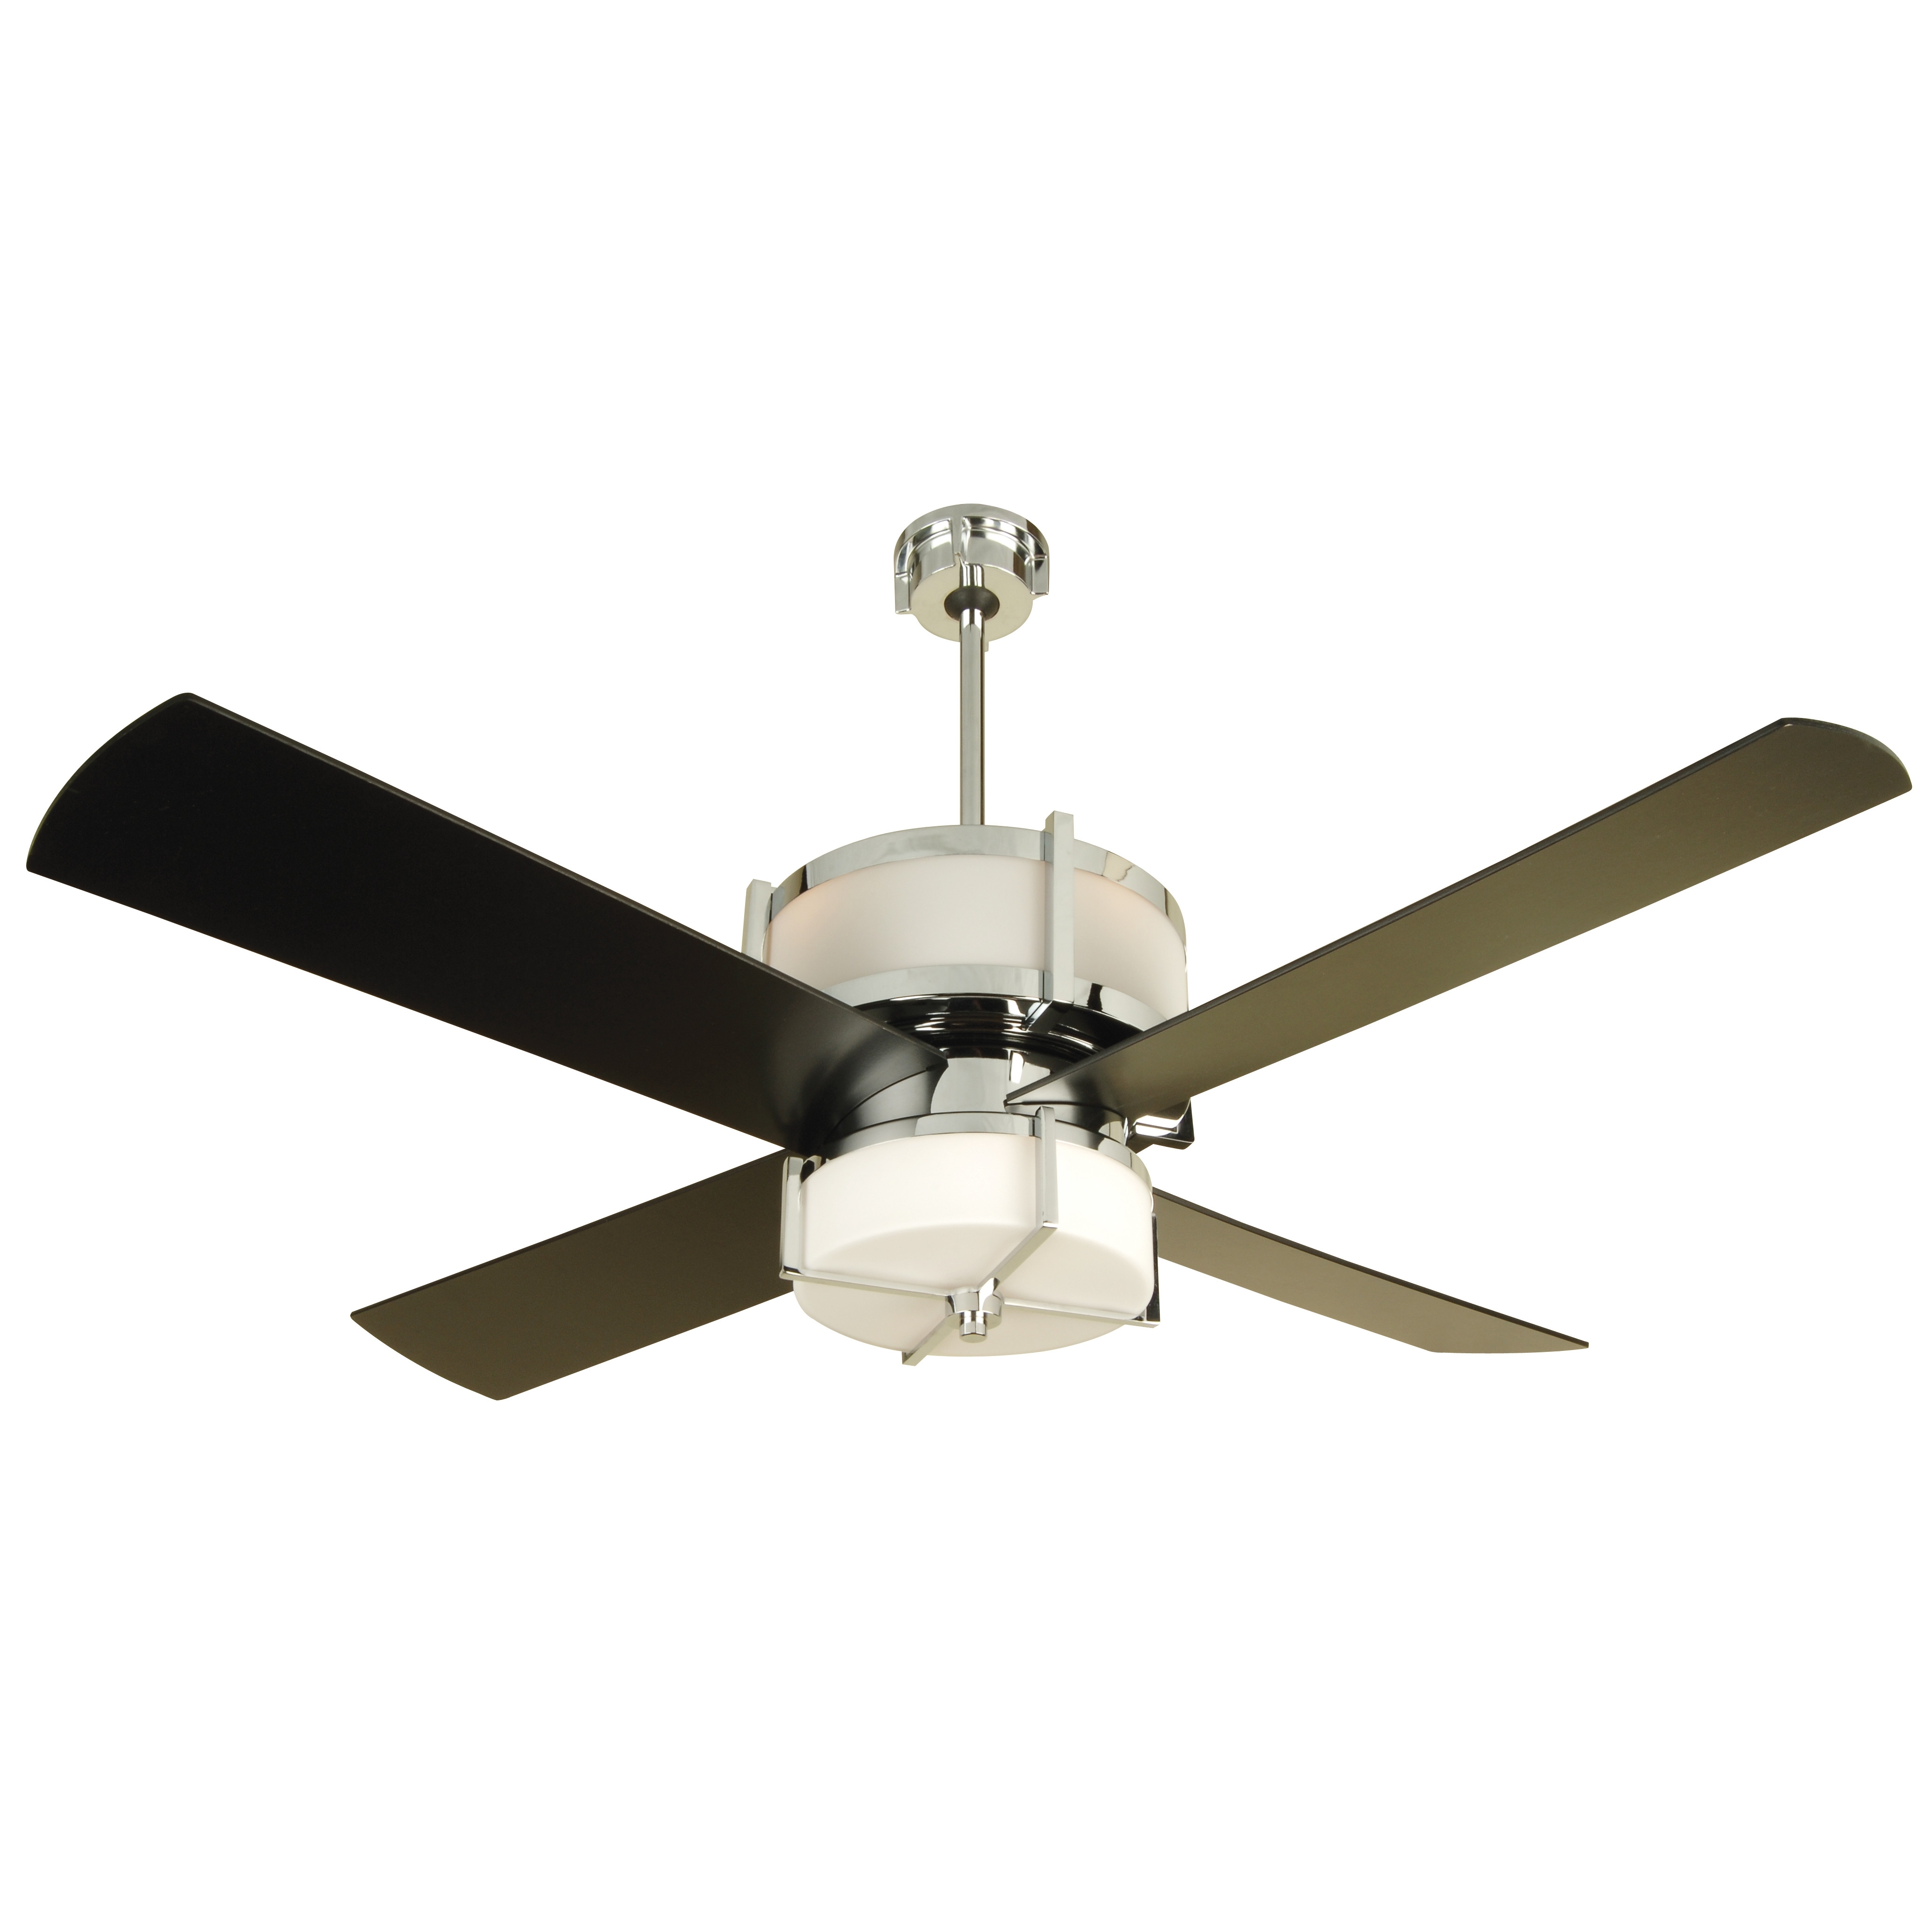 48 Outdoor Ceiling Fans With Light Kit Throughout Popular Ceilings: Remarkable Craftmade Ceiling Fans For Appealing Home (View 6 of 20)